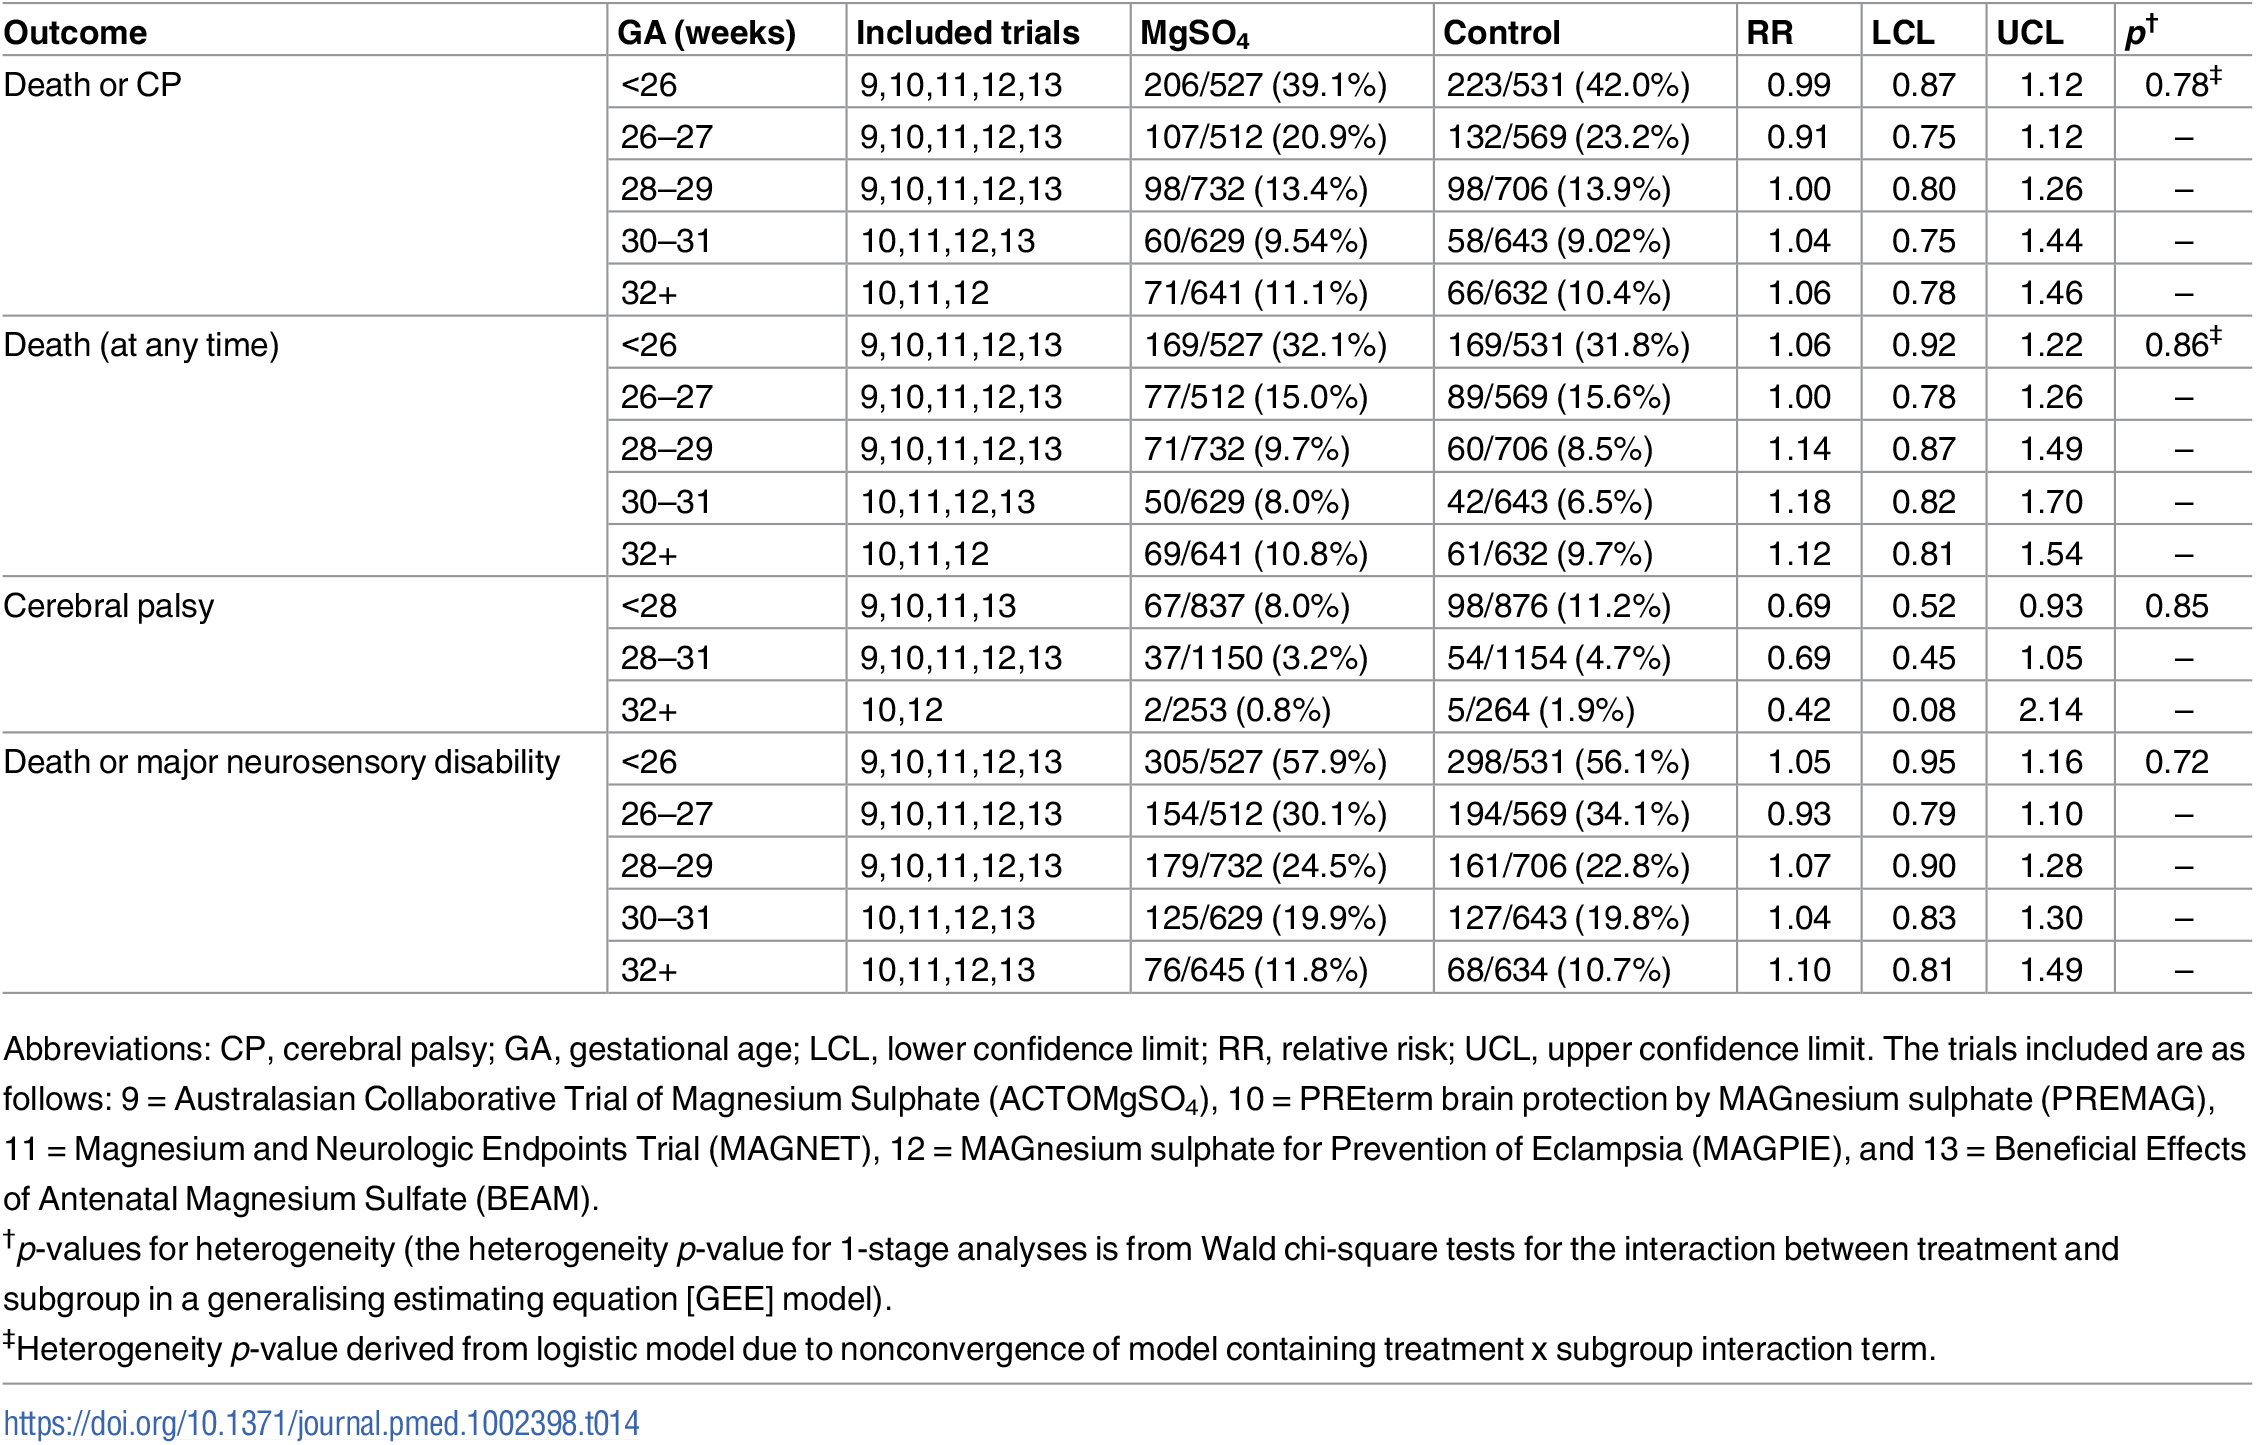 Treatment effects among the subgroups of gestational age when treatment first given.